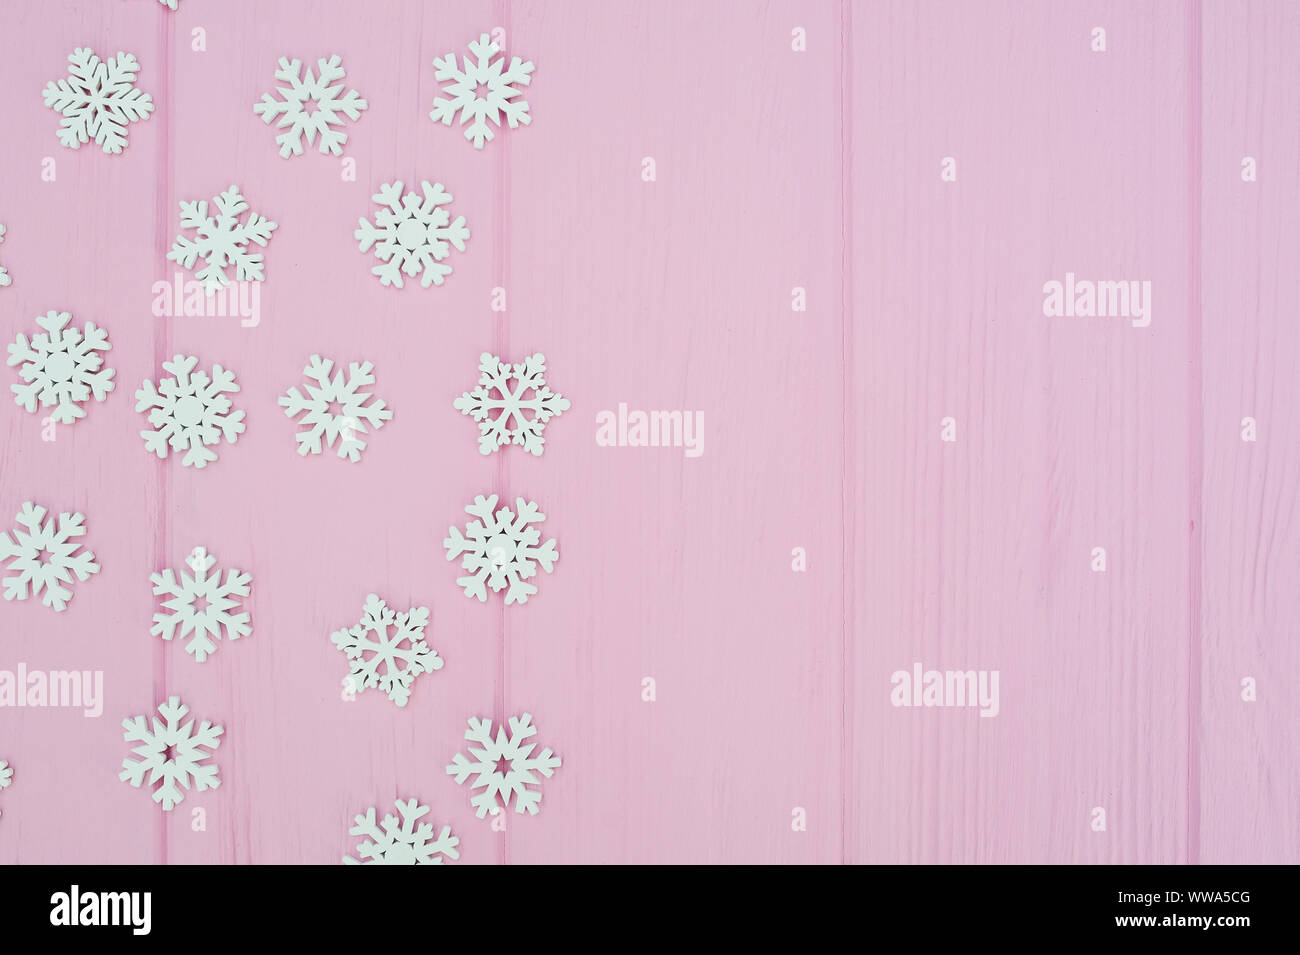 white christmas snowflakes decoration on pink wooden background with place for your text xmas wallpaper flat lay top view WWA5CG